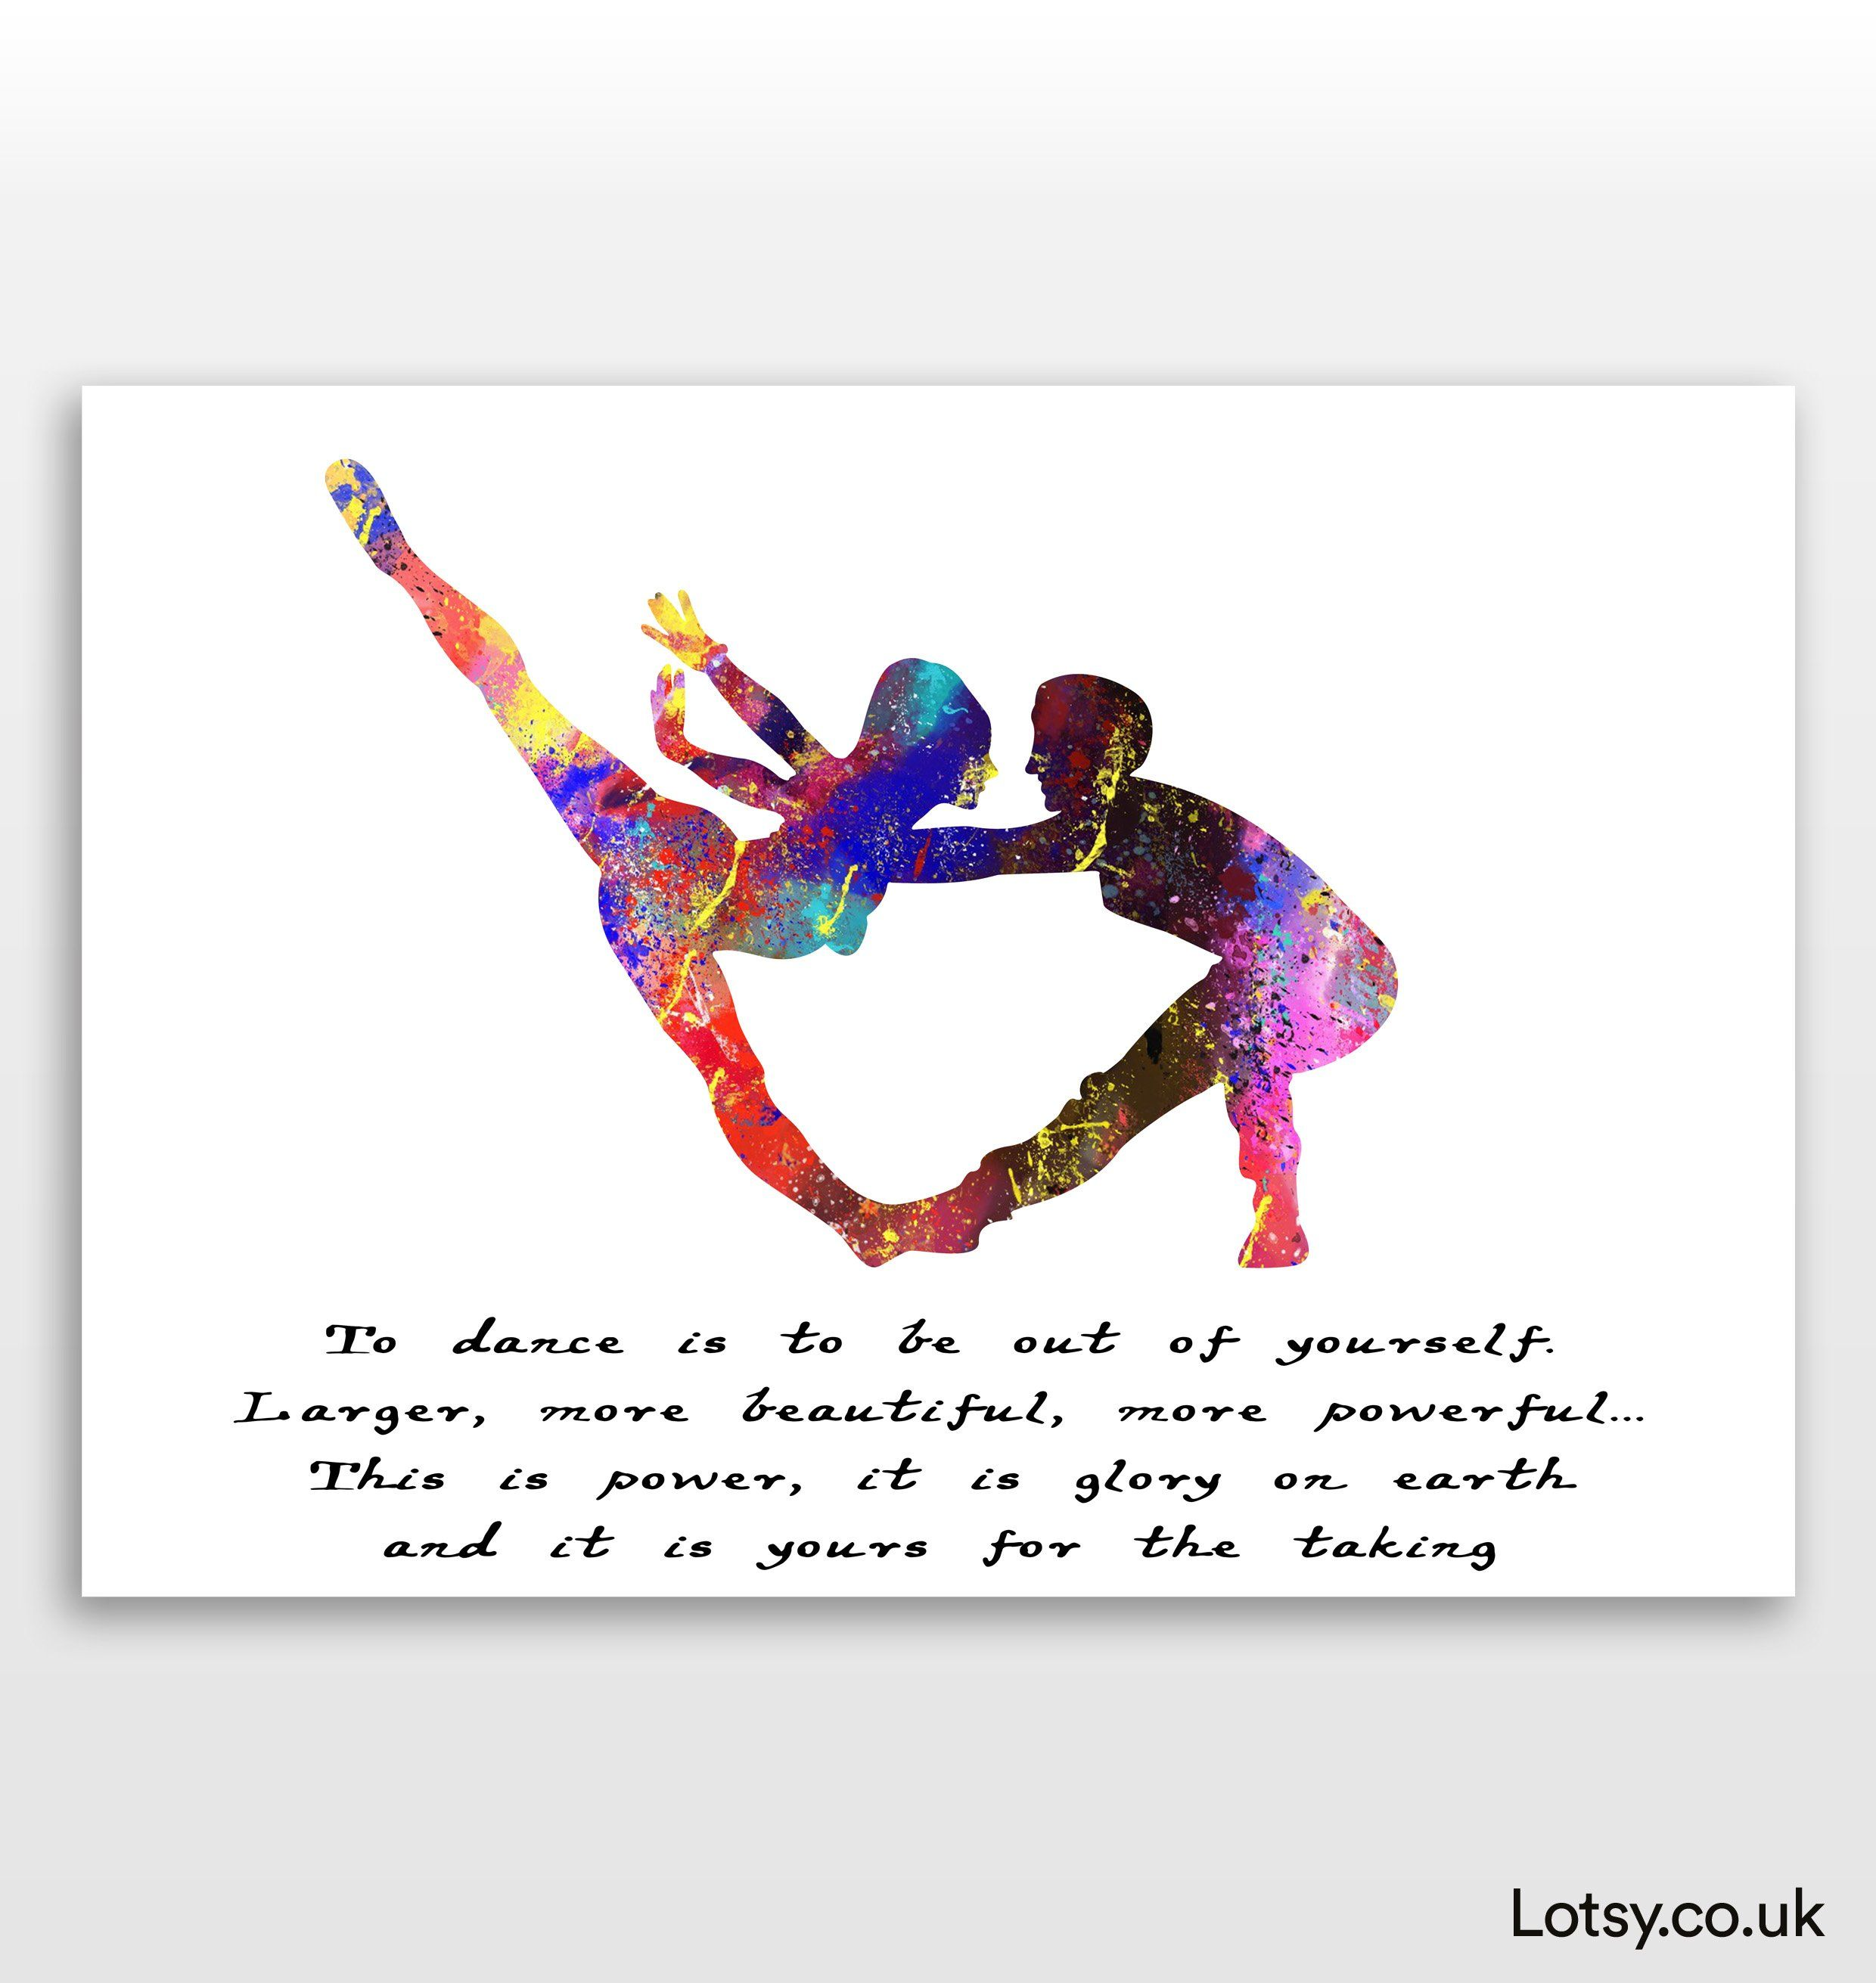 Ballet Quote - To dance is to be out of yourself - A3 - (297mm x 420mm) (11.7inch x 16.5inch)